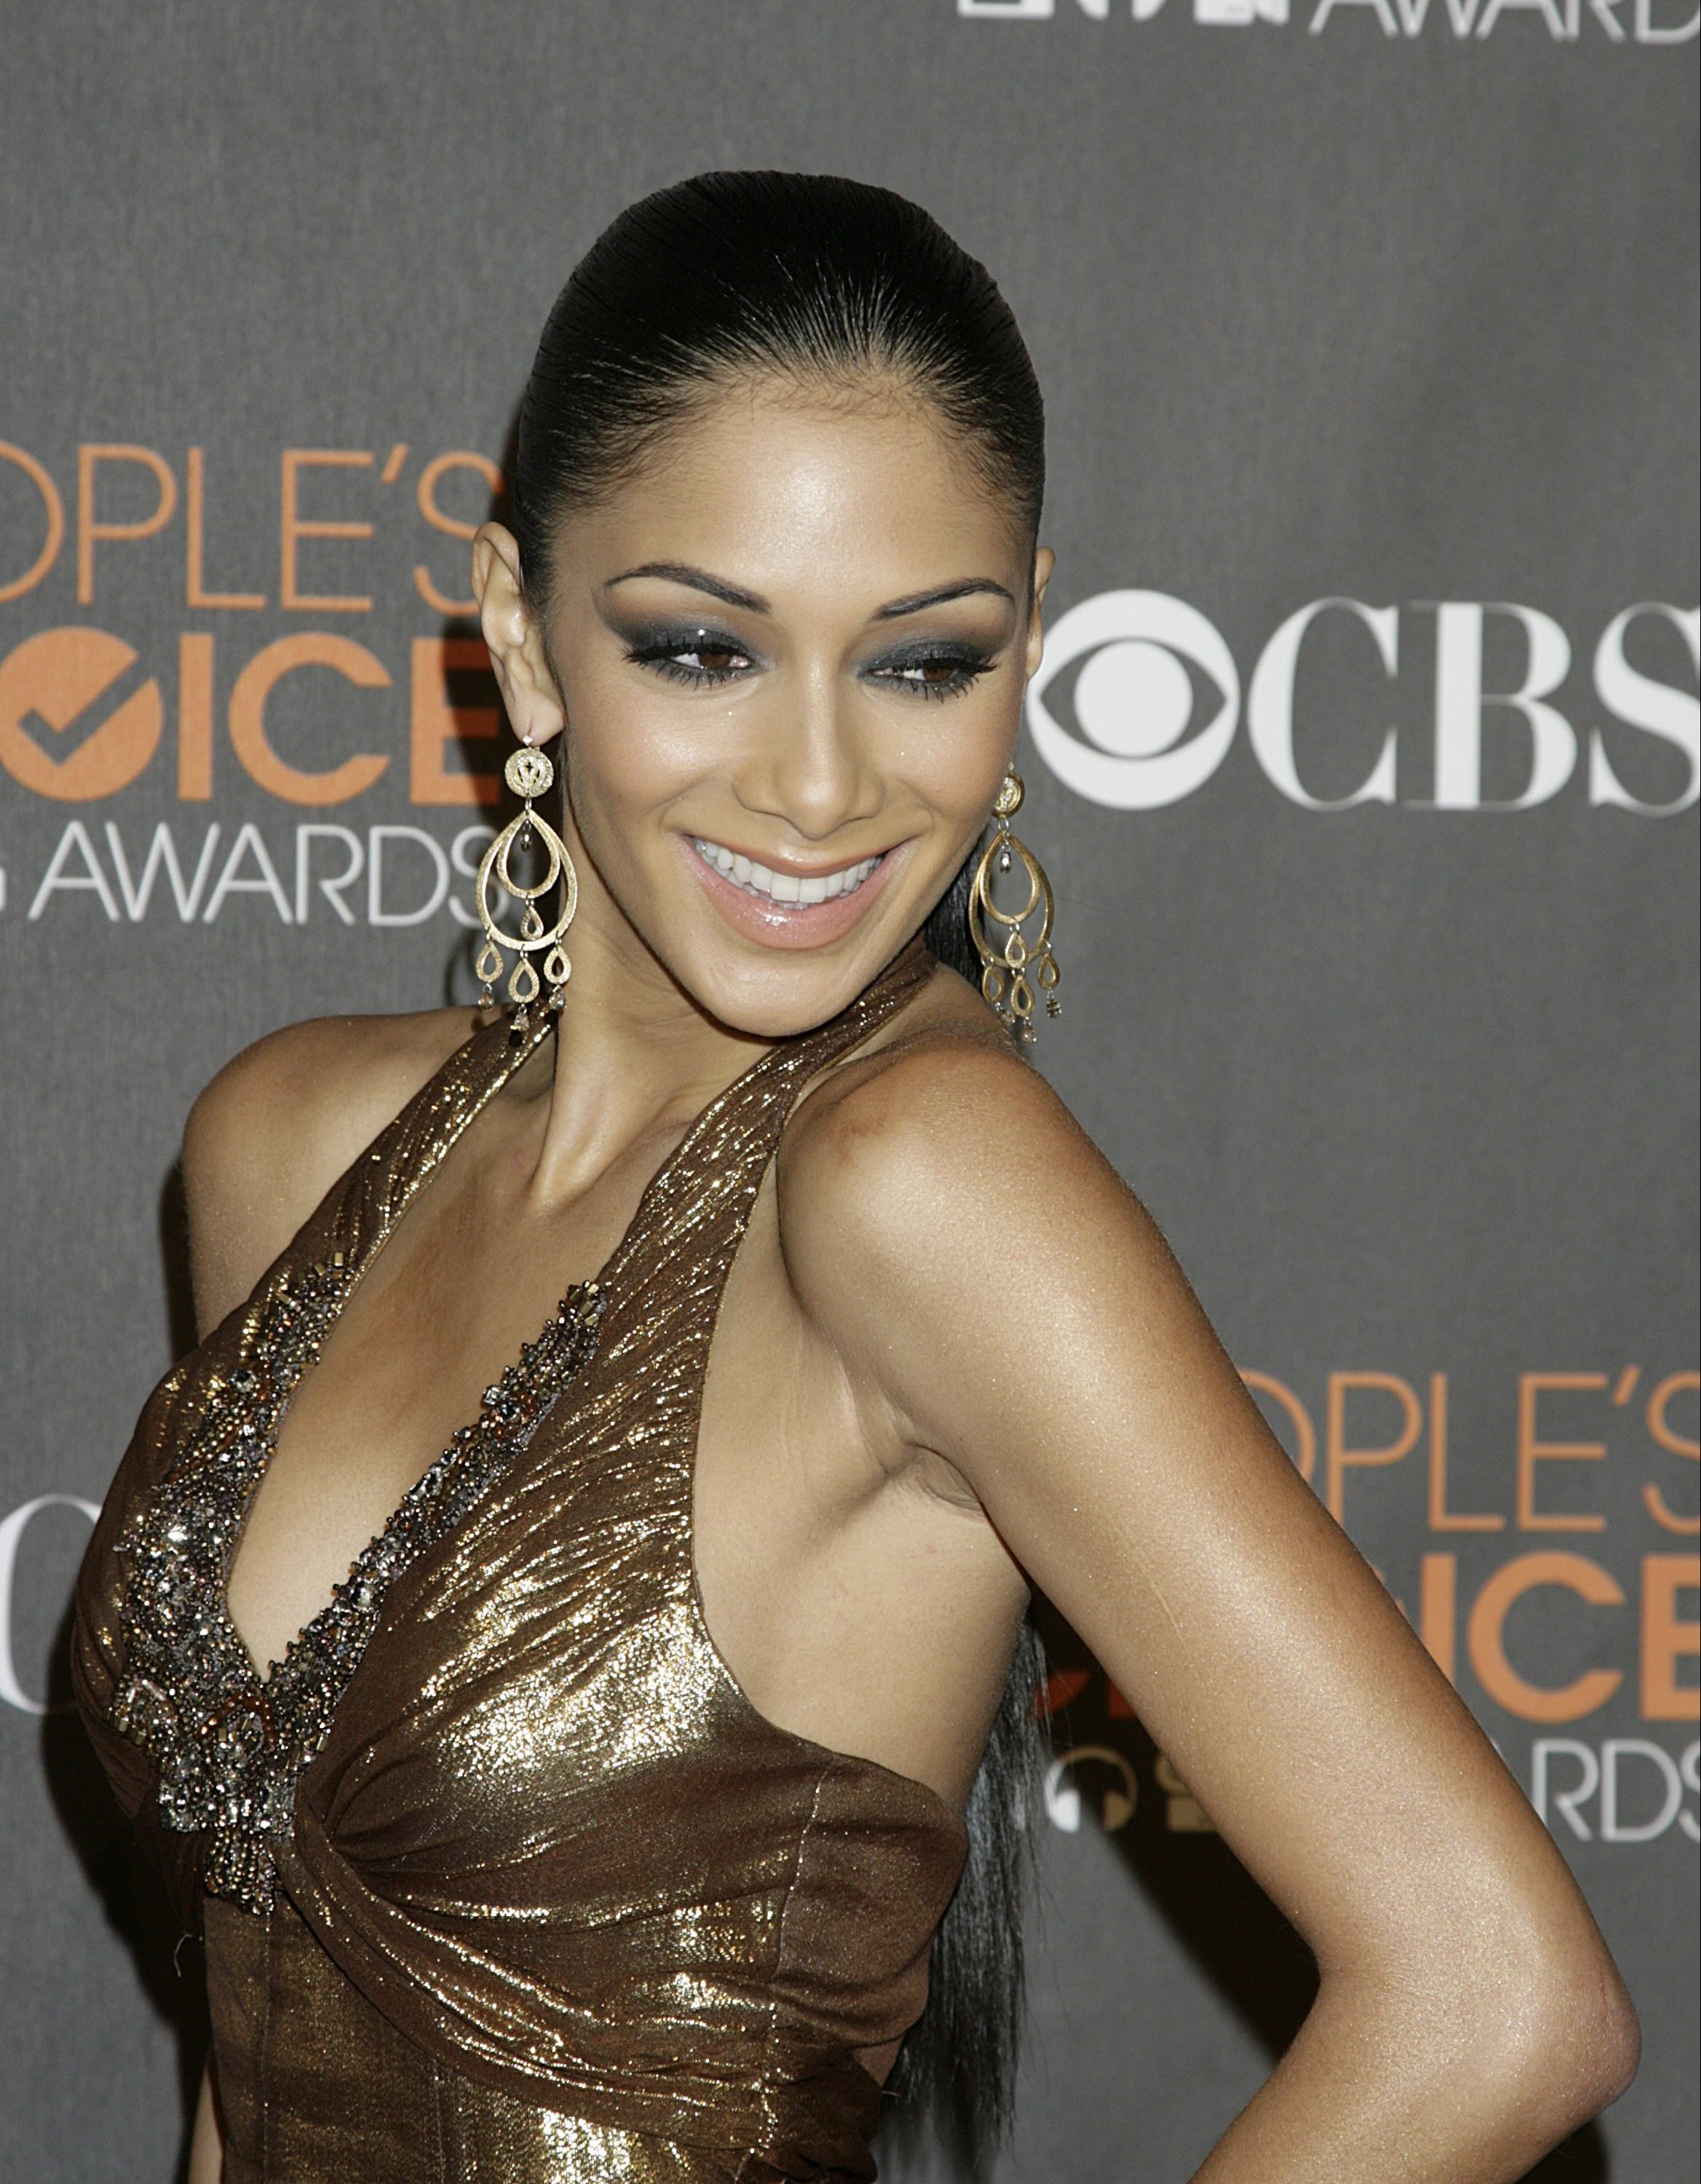 75967_Nicole_Scherzinger_arrives_at_the_Peoples_Choice_Awards.com-The_Elder-Nicole_Scherzinger_2010-01-06_-_36th_annual_People0s8860_122_436lo.jpg